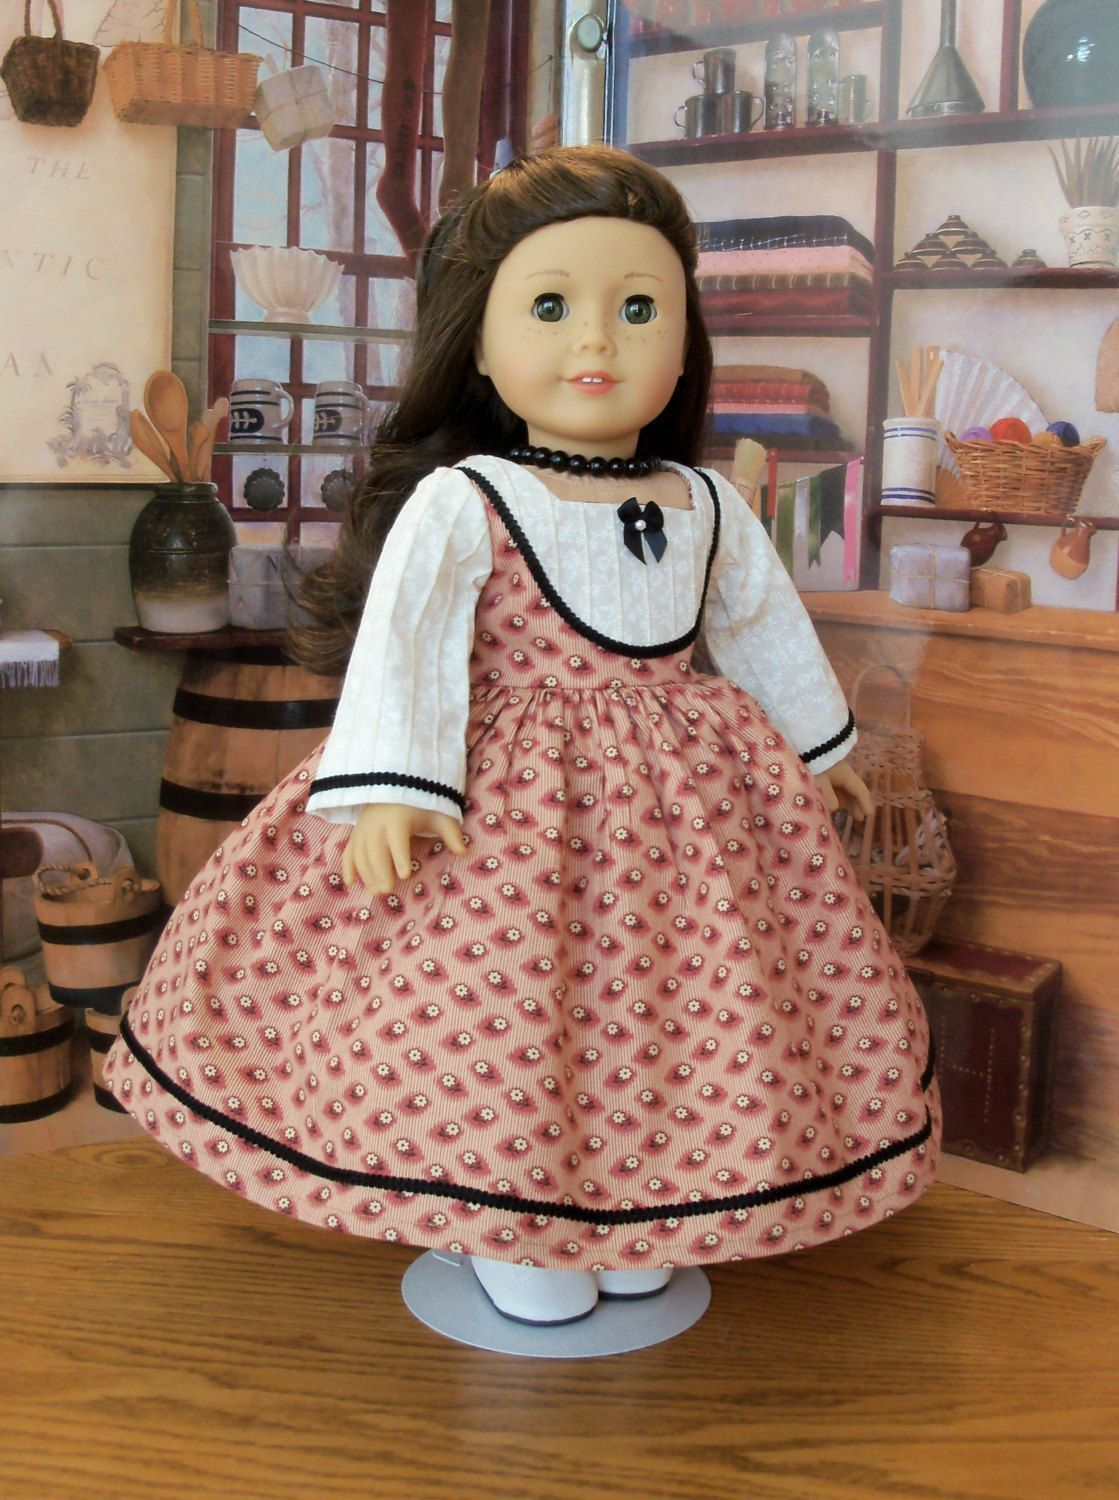 American Girl Mid 1800's Southern Belle Gown  / Clothes for Marie Grace or Cecile. $78.00, via Etsy. #bedfalls62 American Girl Mid 1800's Southern Belle Gown  / Clothes for Marie Grace or Cecile. $78.00, via Etsy. #bedfalls62 American Girl Mid 1800's Southern Belle Gown  / Clothes for Marie Grace or Cecile. $78.00, via Etsy. #bedfalls62 American Girl Mid 1800's Southern Belle Gown  / Clothes for Marie Grace or Cecile. $78.00, via Etsy. #bedfalls62 American Girl Mid 1800's Southern Belle Gown  / #bedfalls62